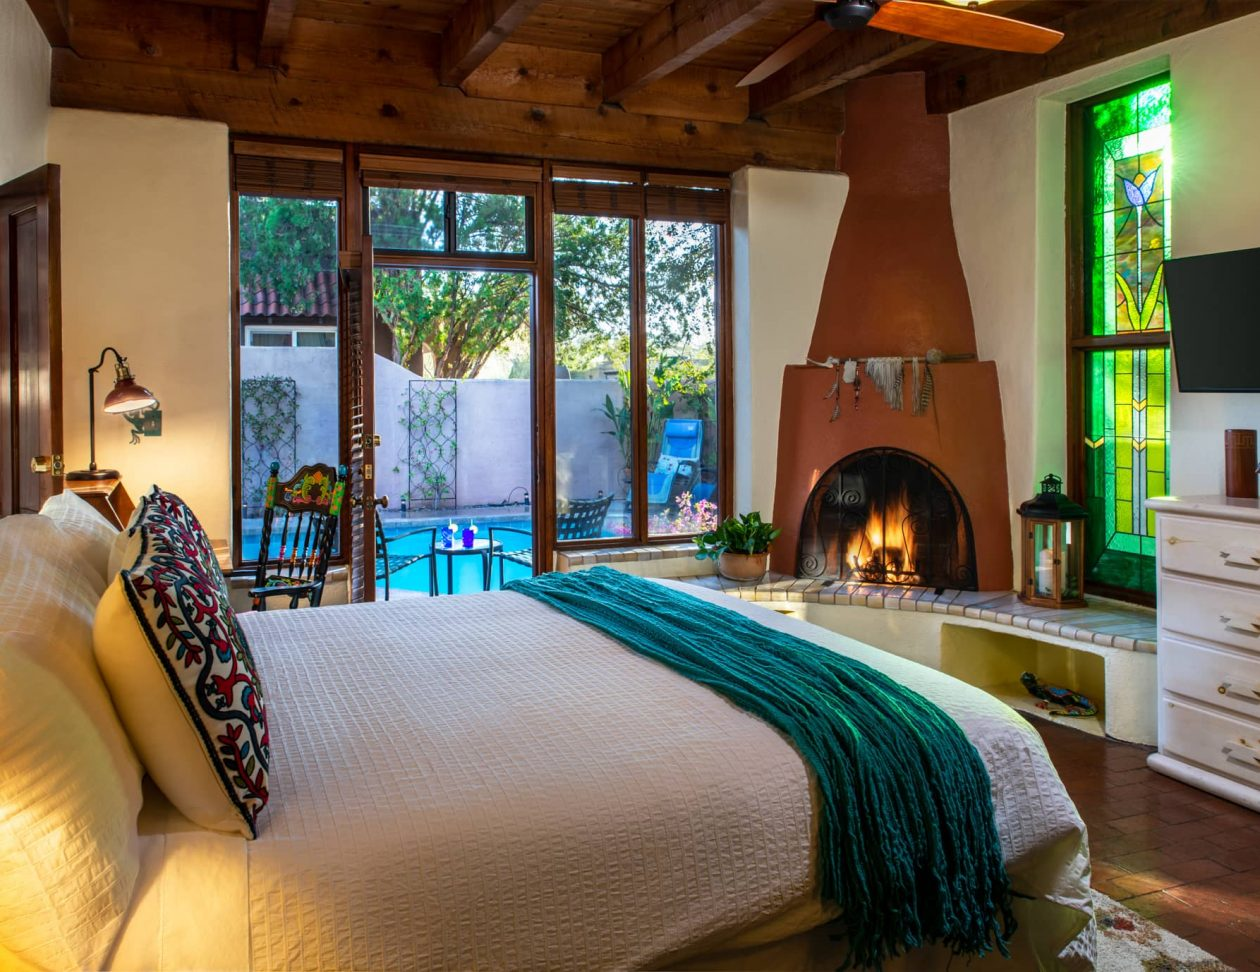 King bed in the Atanacia room at Adobe Rose Inn with a fireplace and view of the pool